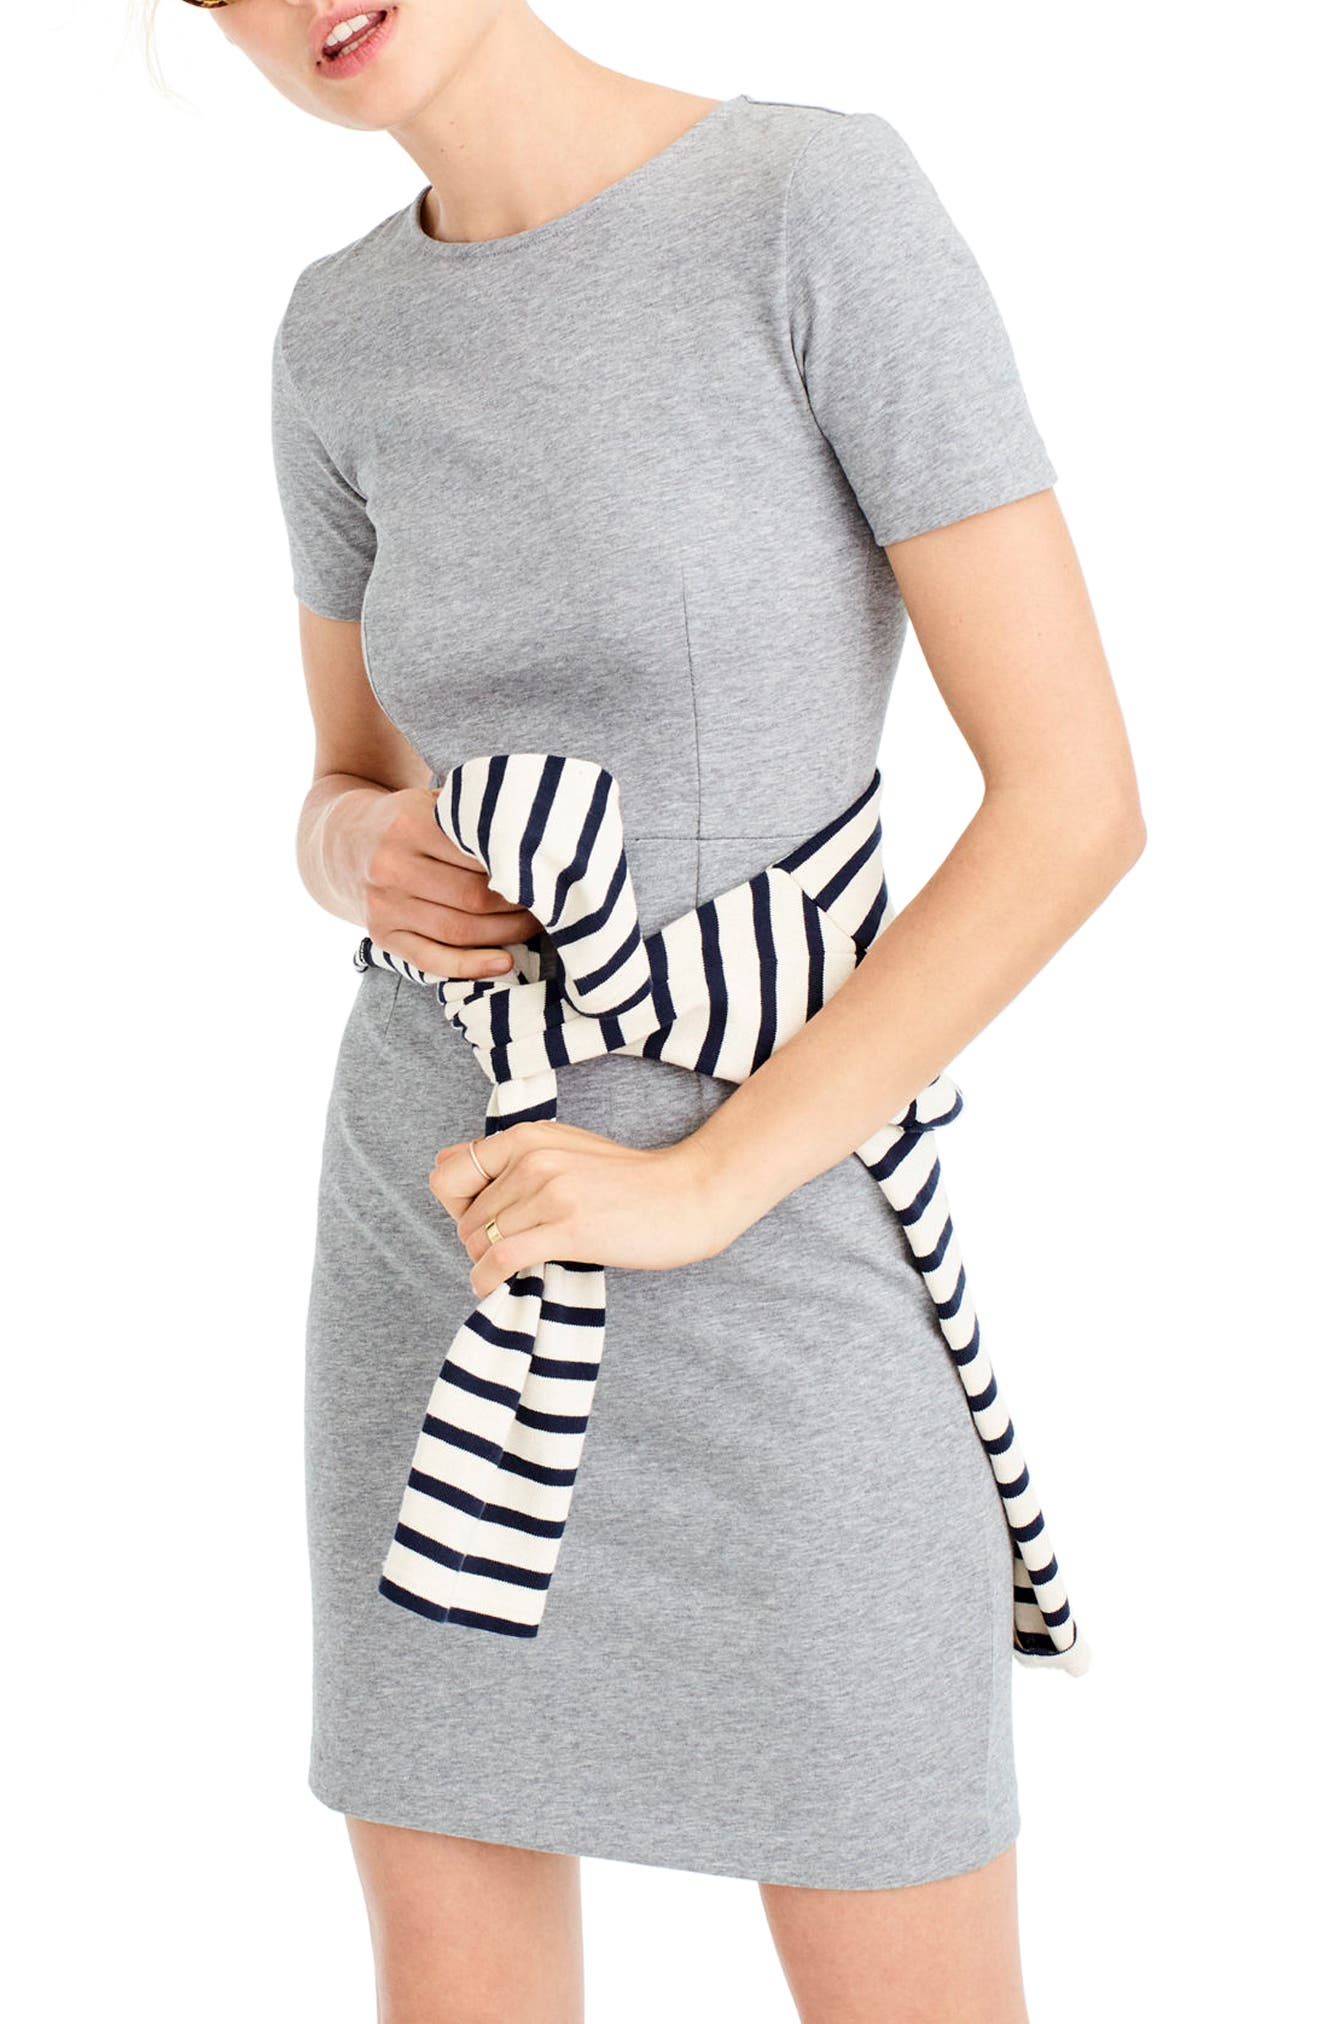 J.Crew Cotton Knit Sheath Dress